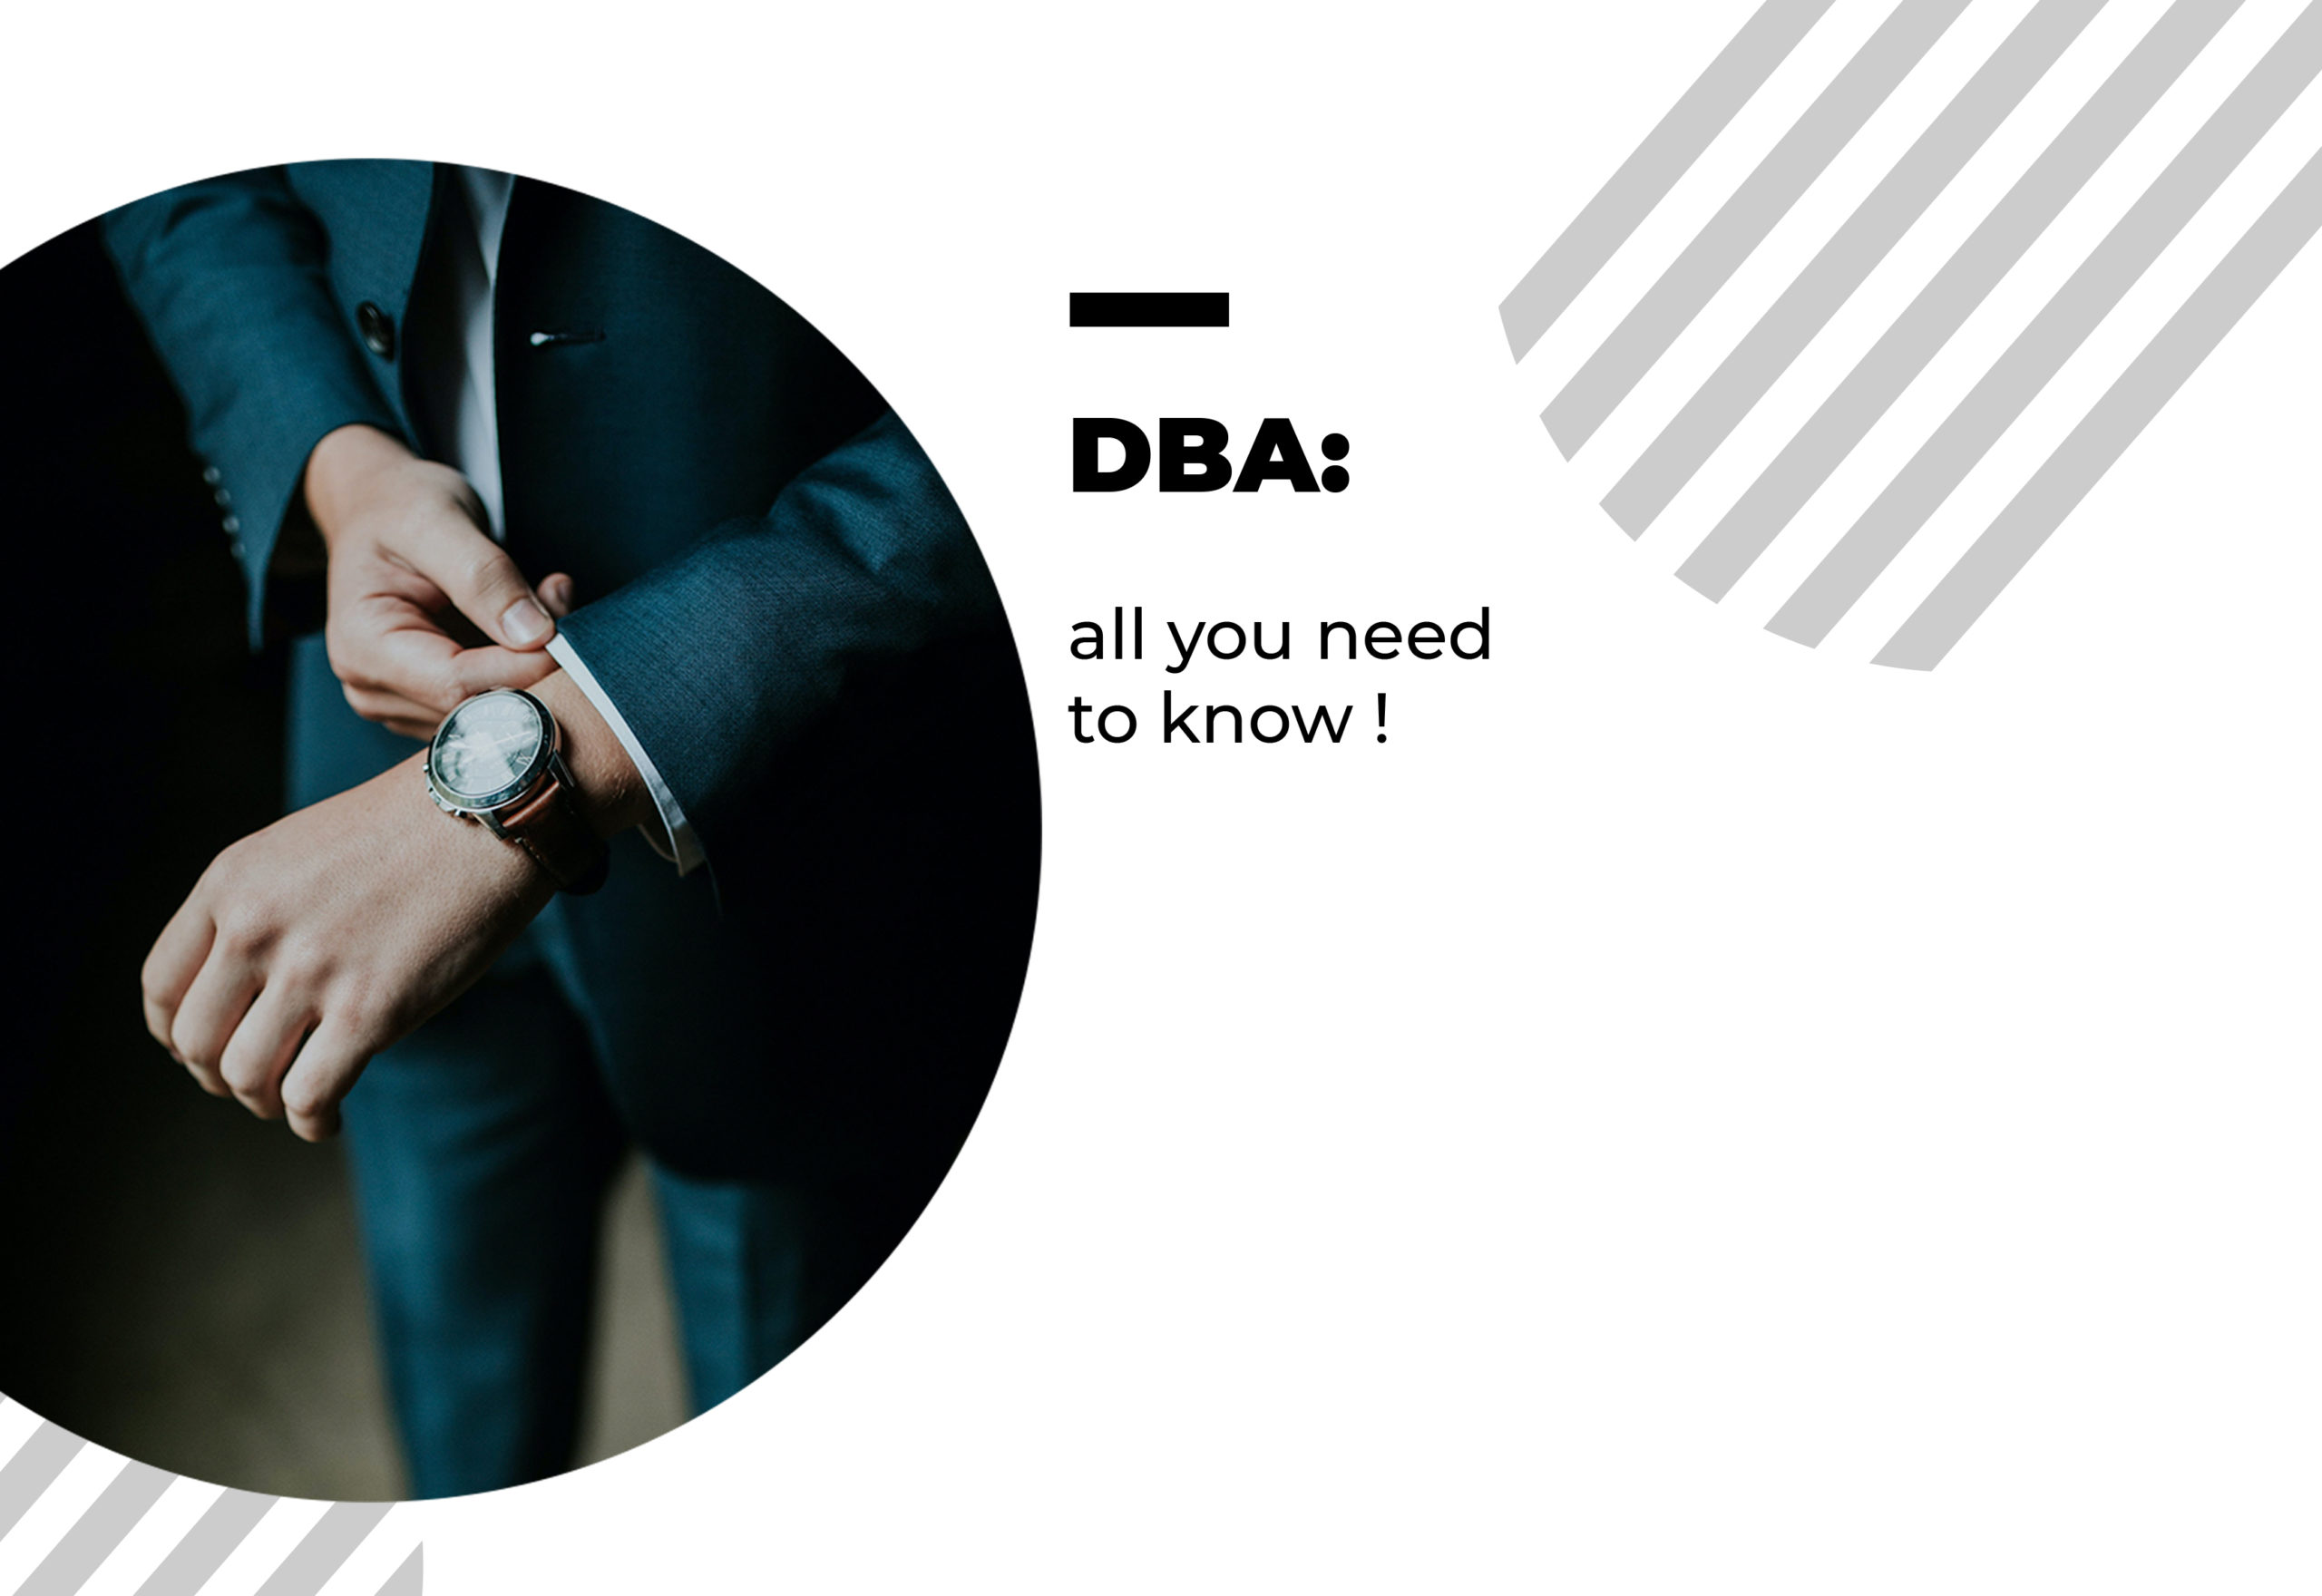 All you need to about DBA degrees